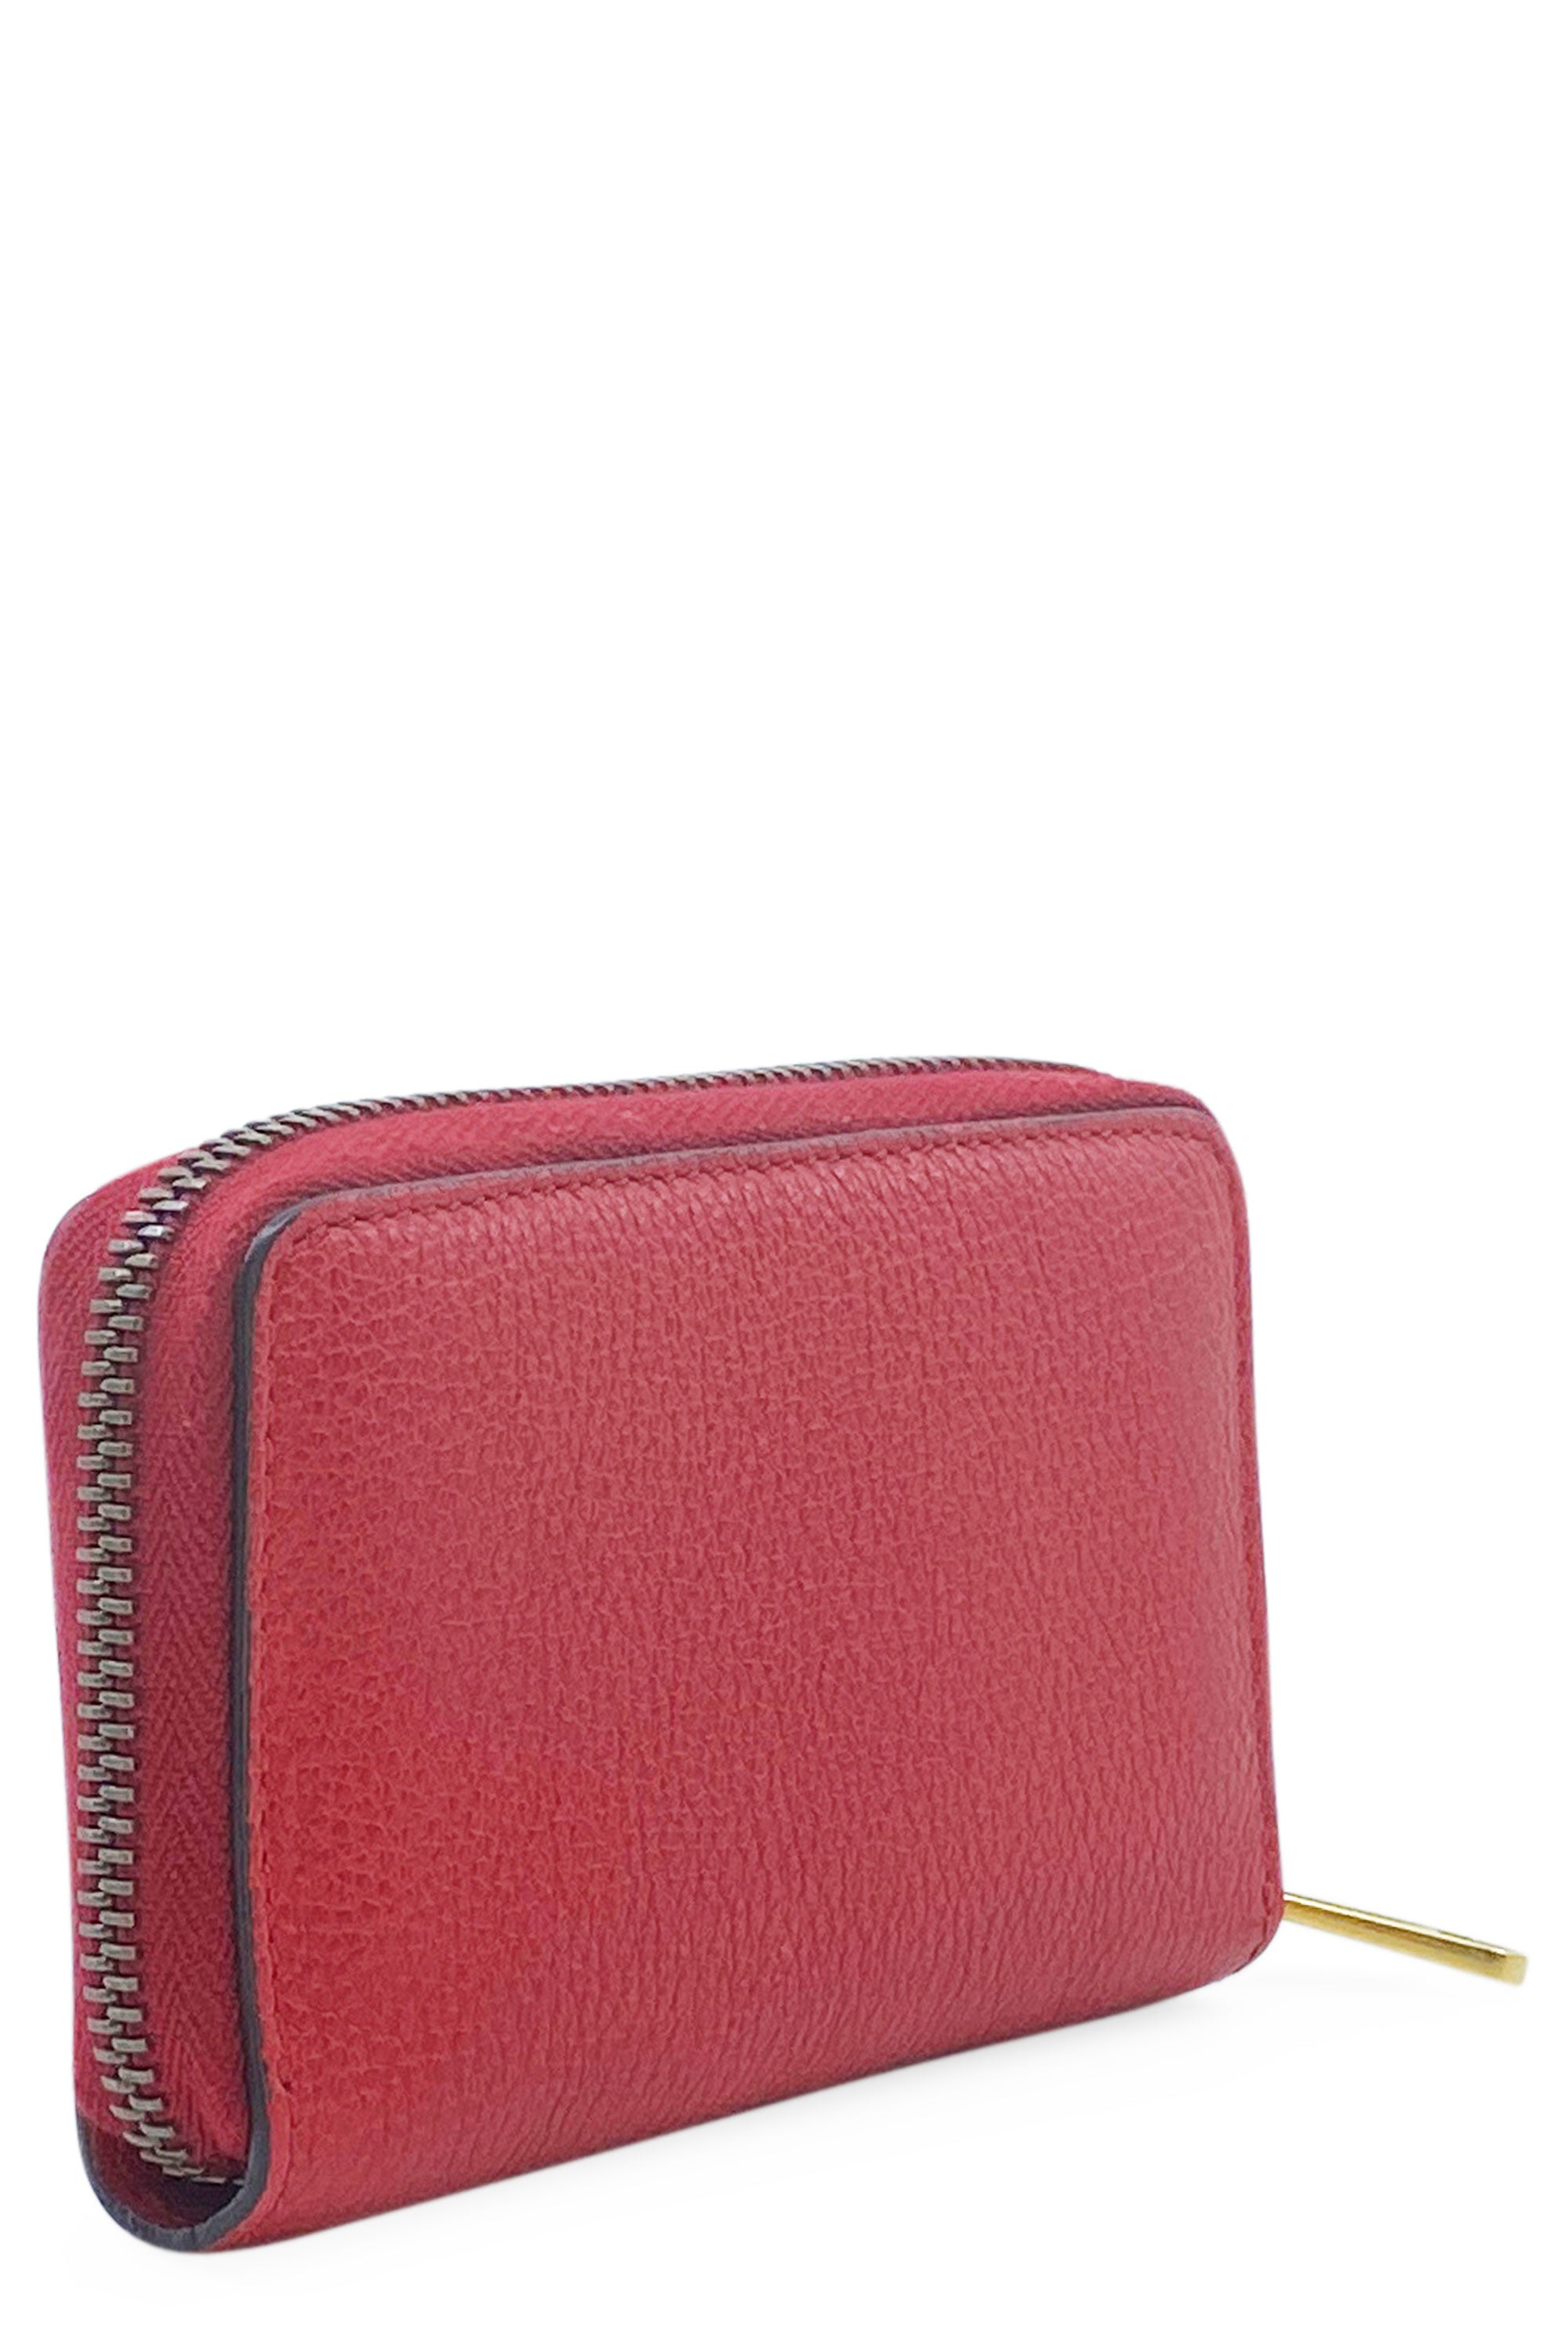 GUCCI Printed Leather Wallet Red